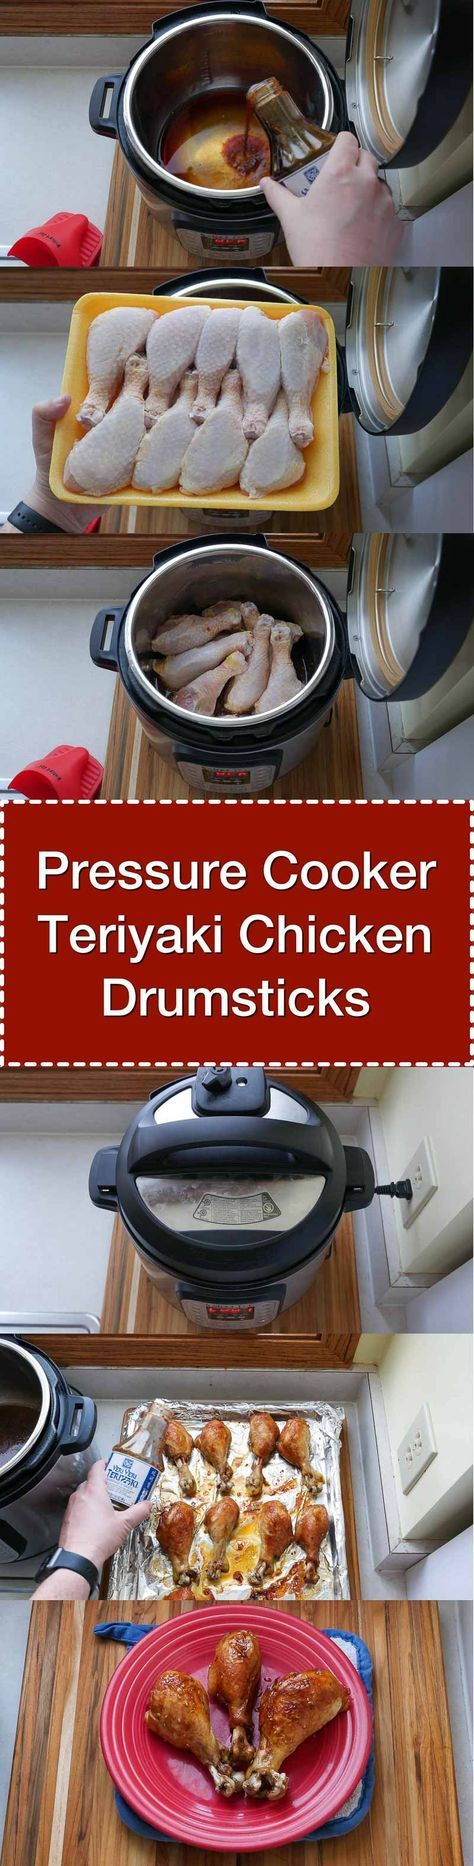 Pressure Cooker Teriyaki Drumsticks: Chicken wing style Teriyaki drumsticks from the pressure cooker...with help from the broiler. #recipe #pressurecooker via @DadCooksDinner